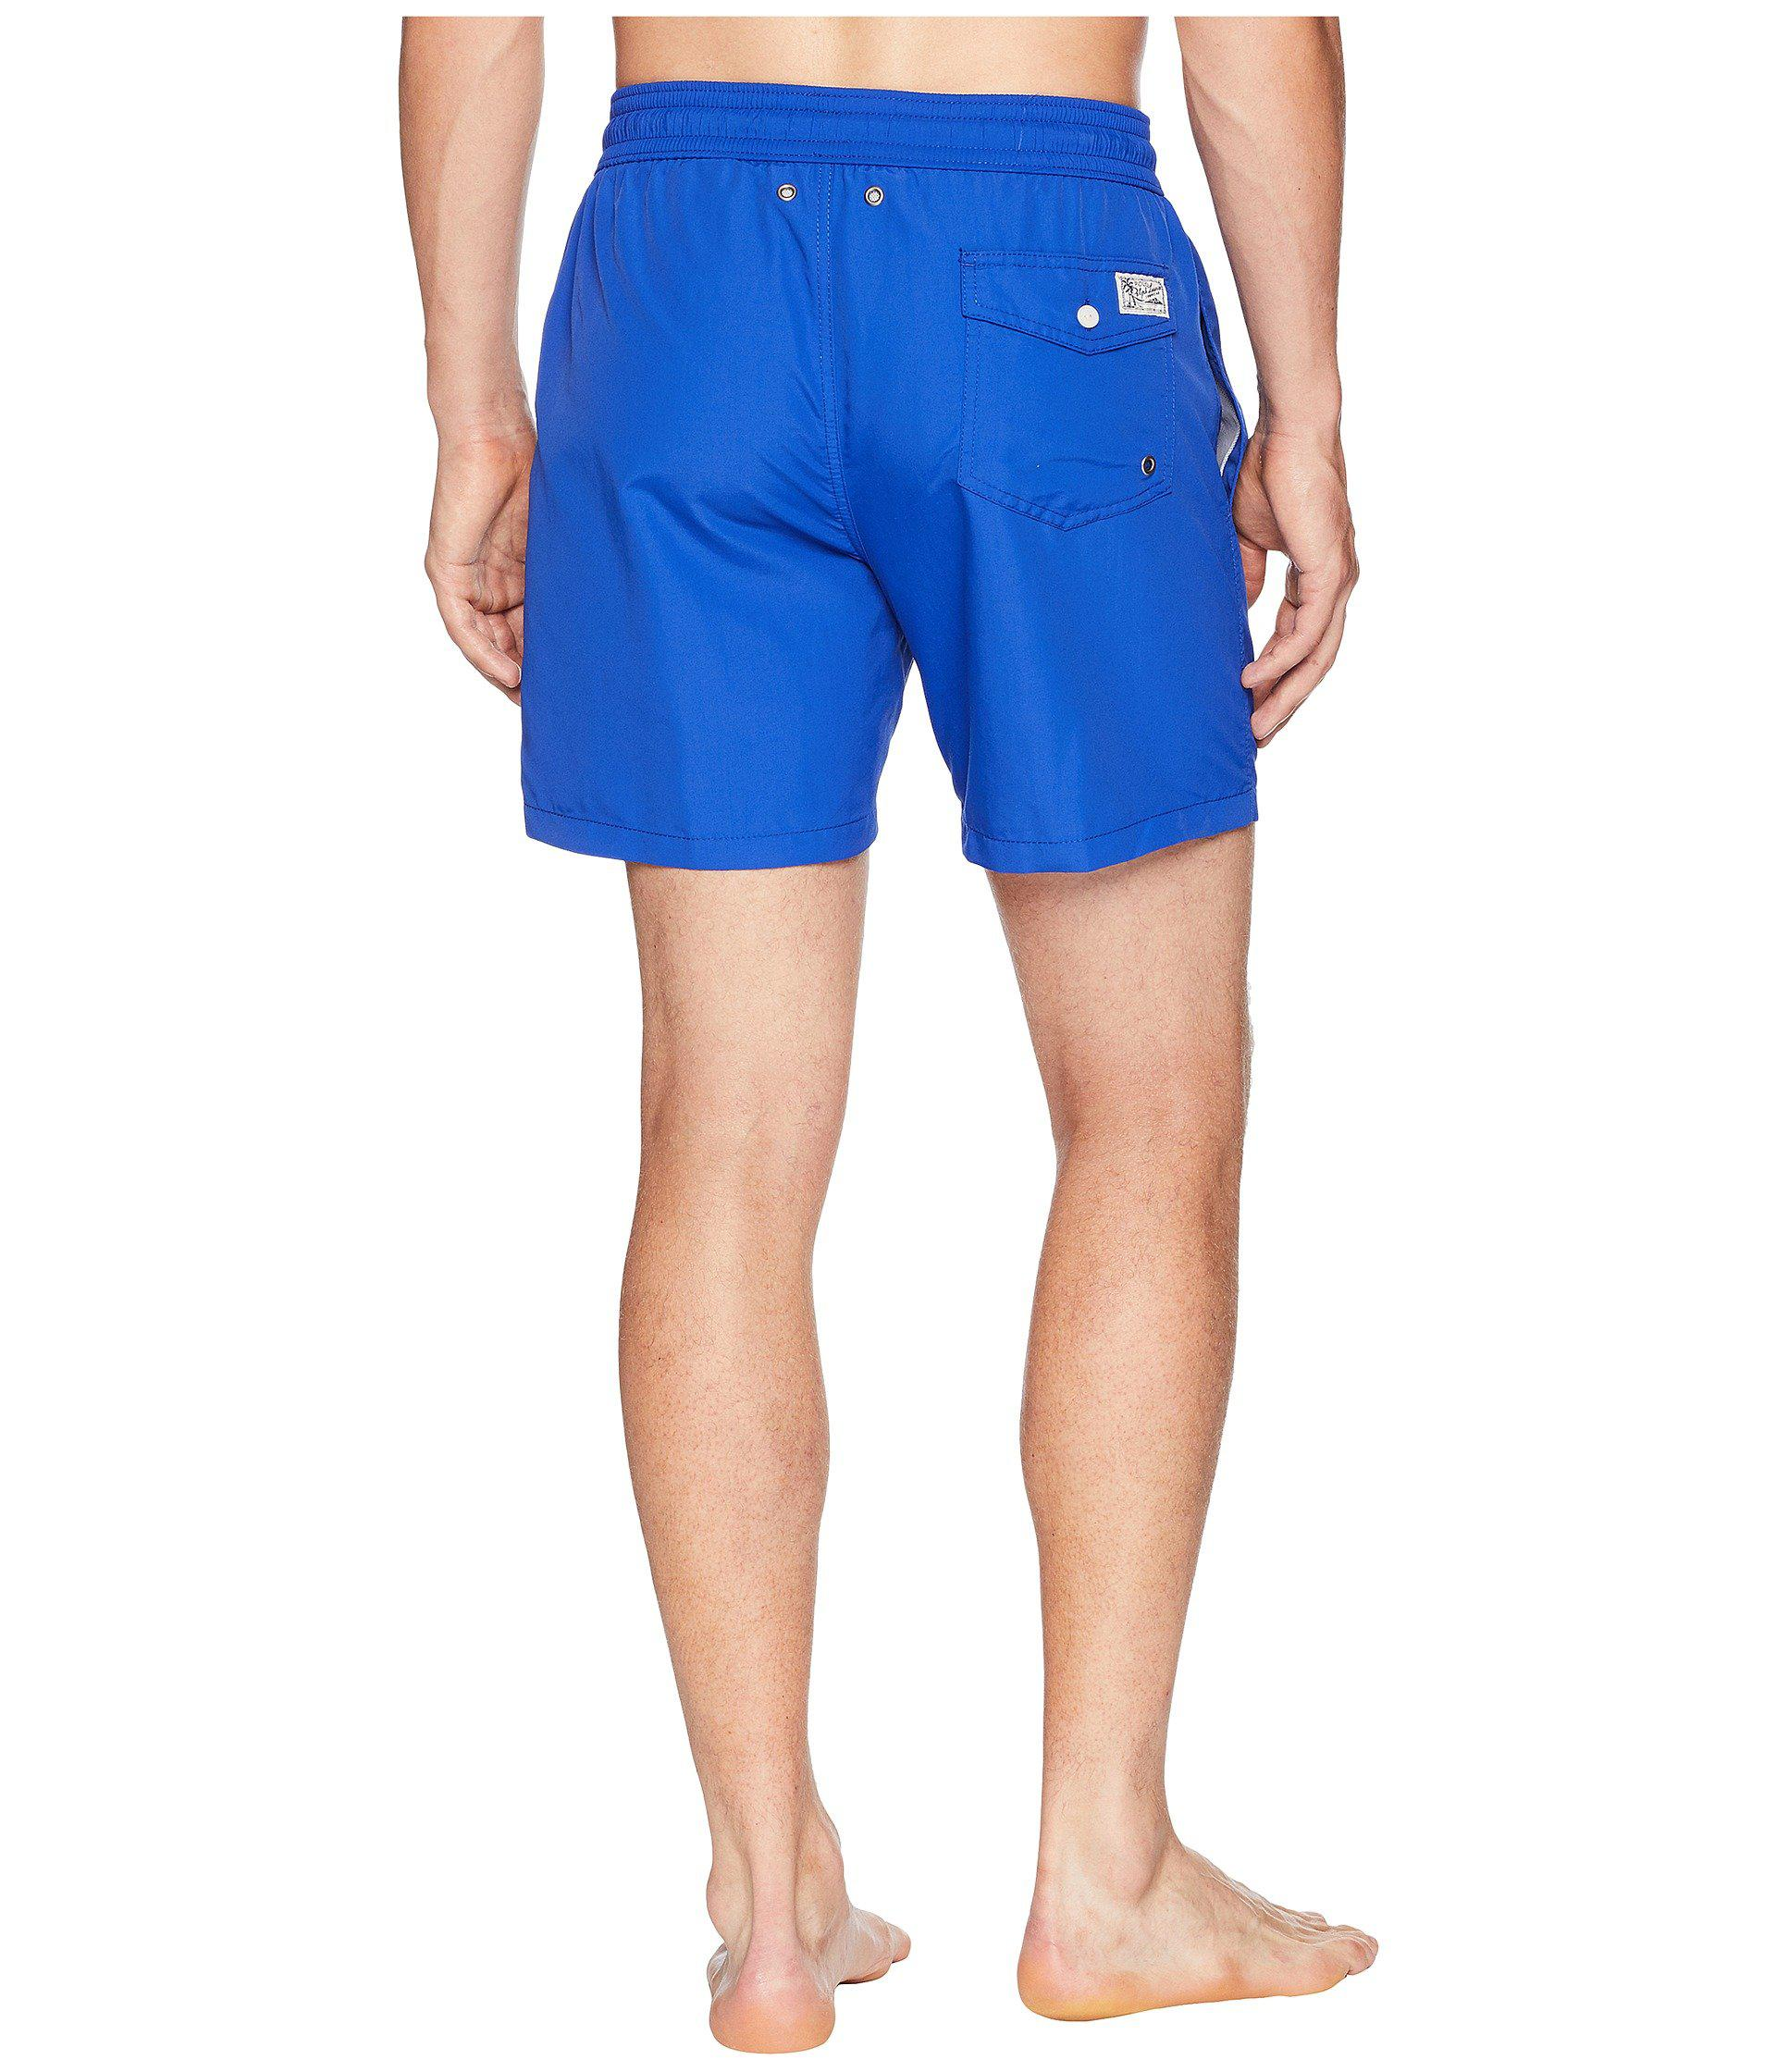 8482774681 Lyst - Polo Ralph Lauren Traveler Swim Shorts (hammond Blue) Men's ...